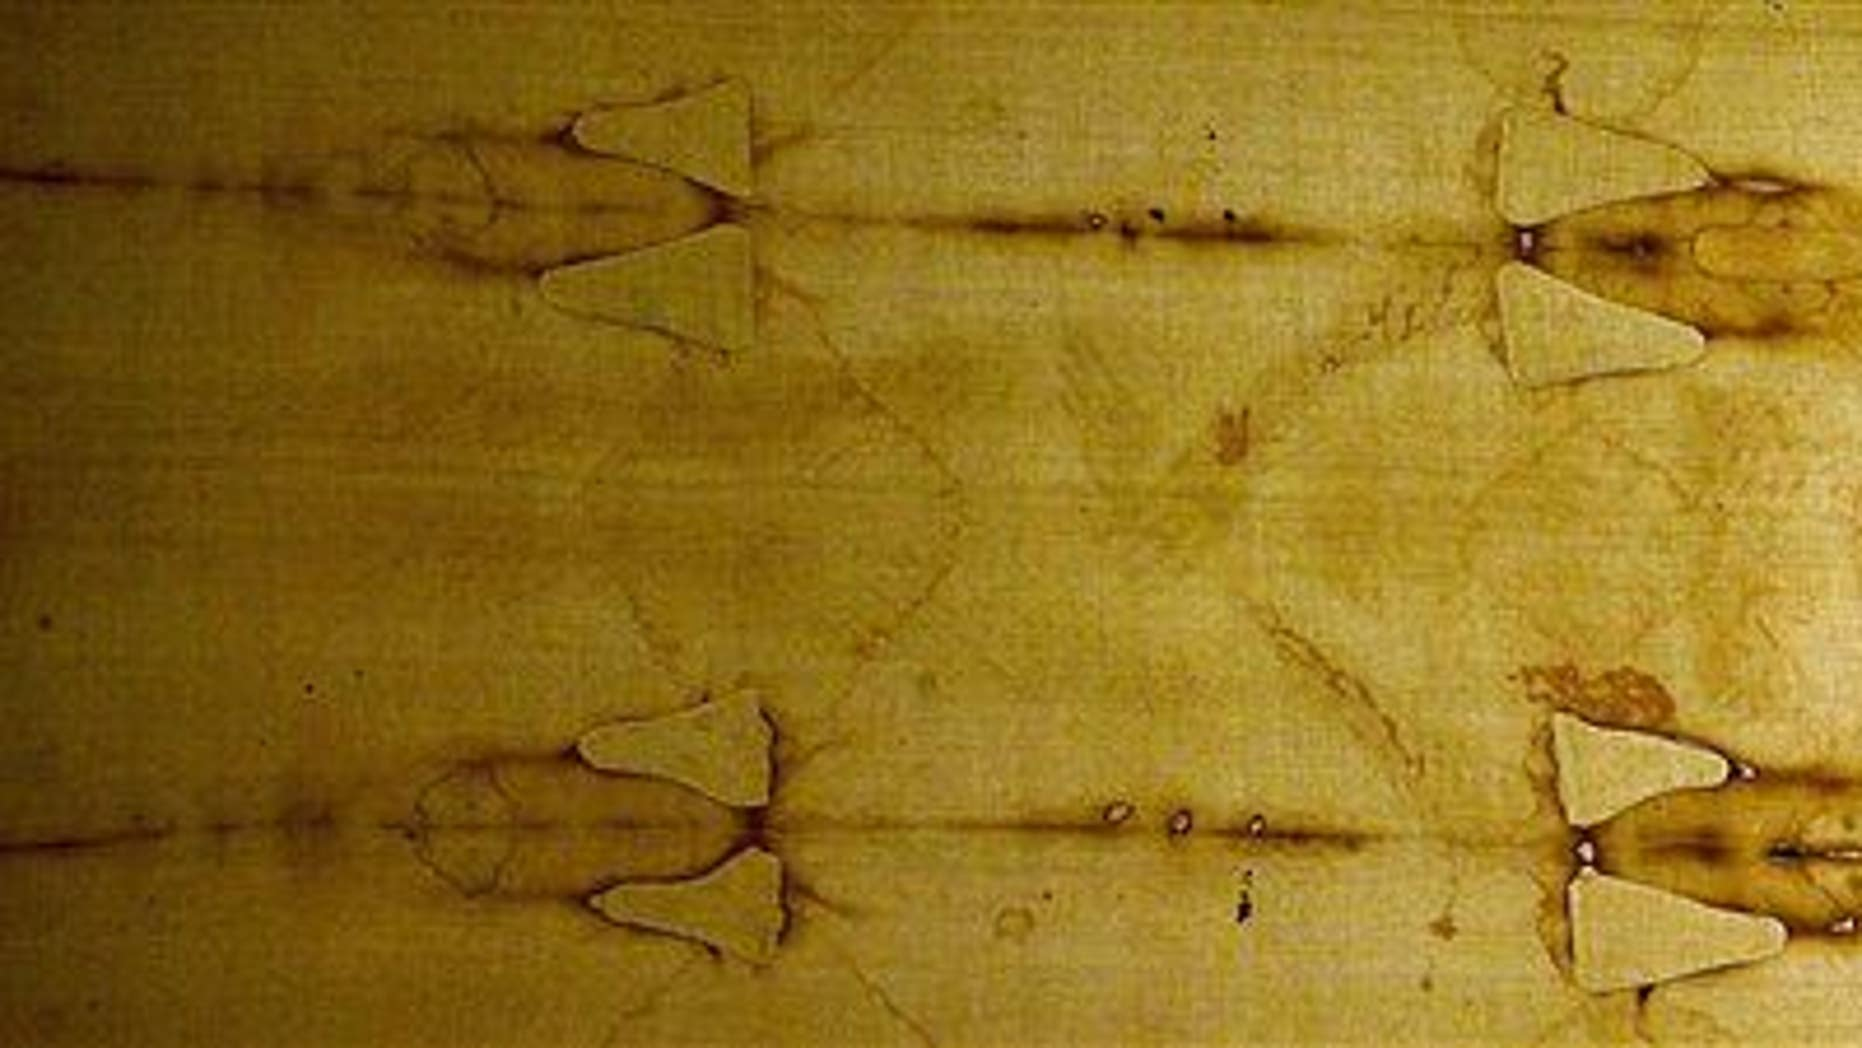 This Saturday, August 12, 2000 file photo shows the Holy Shroud, a 14 foot-long linen revered by some as the burial cloth of Jesus.